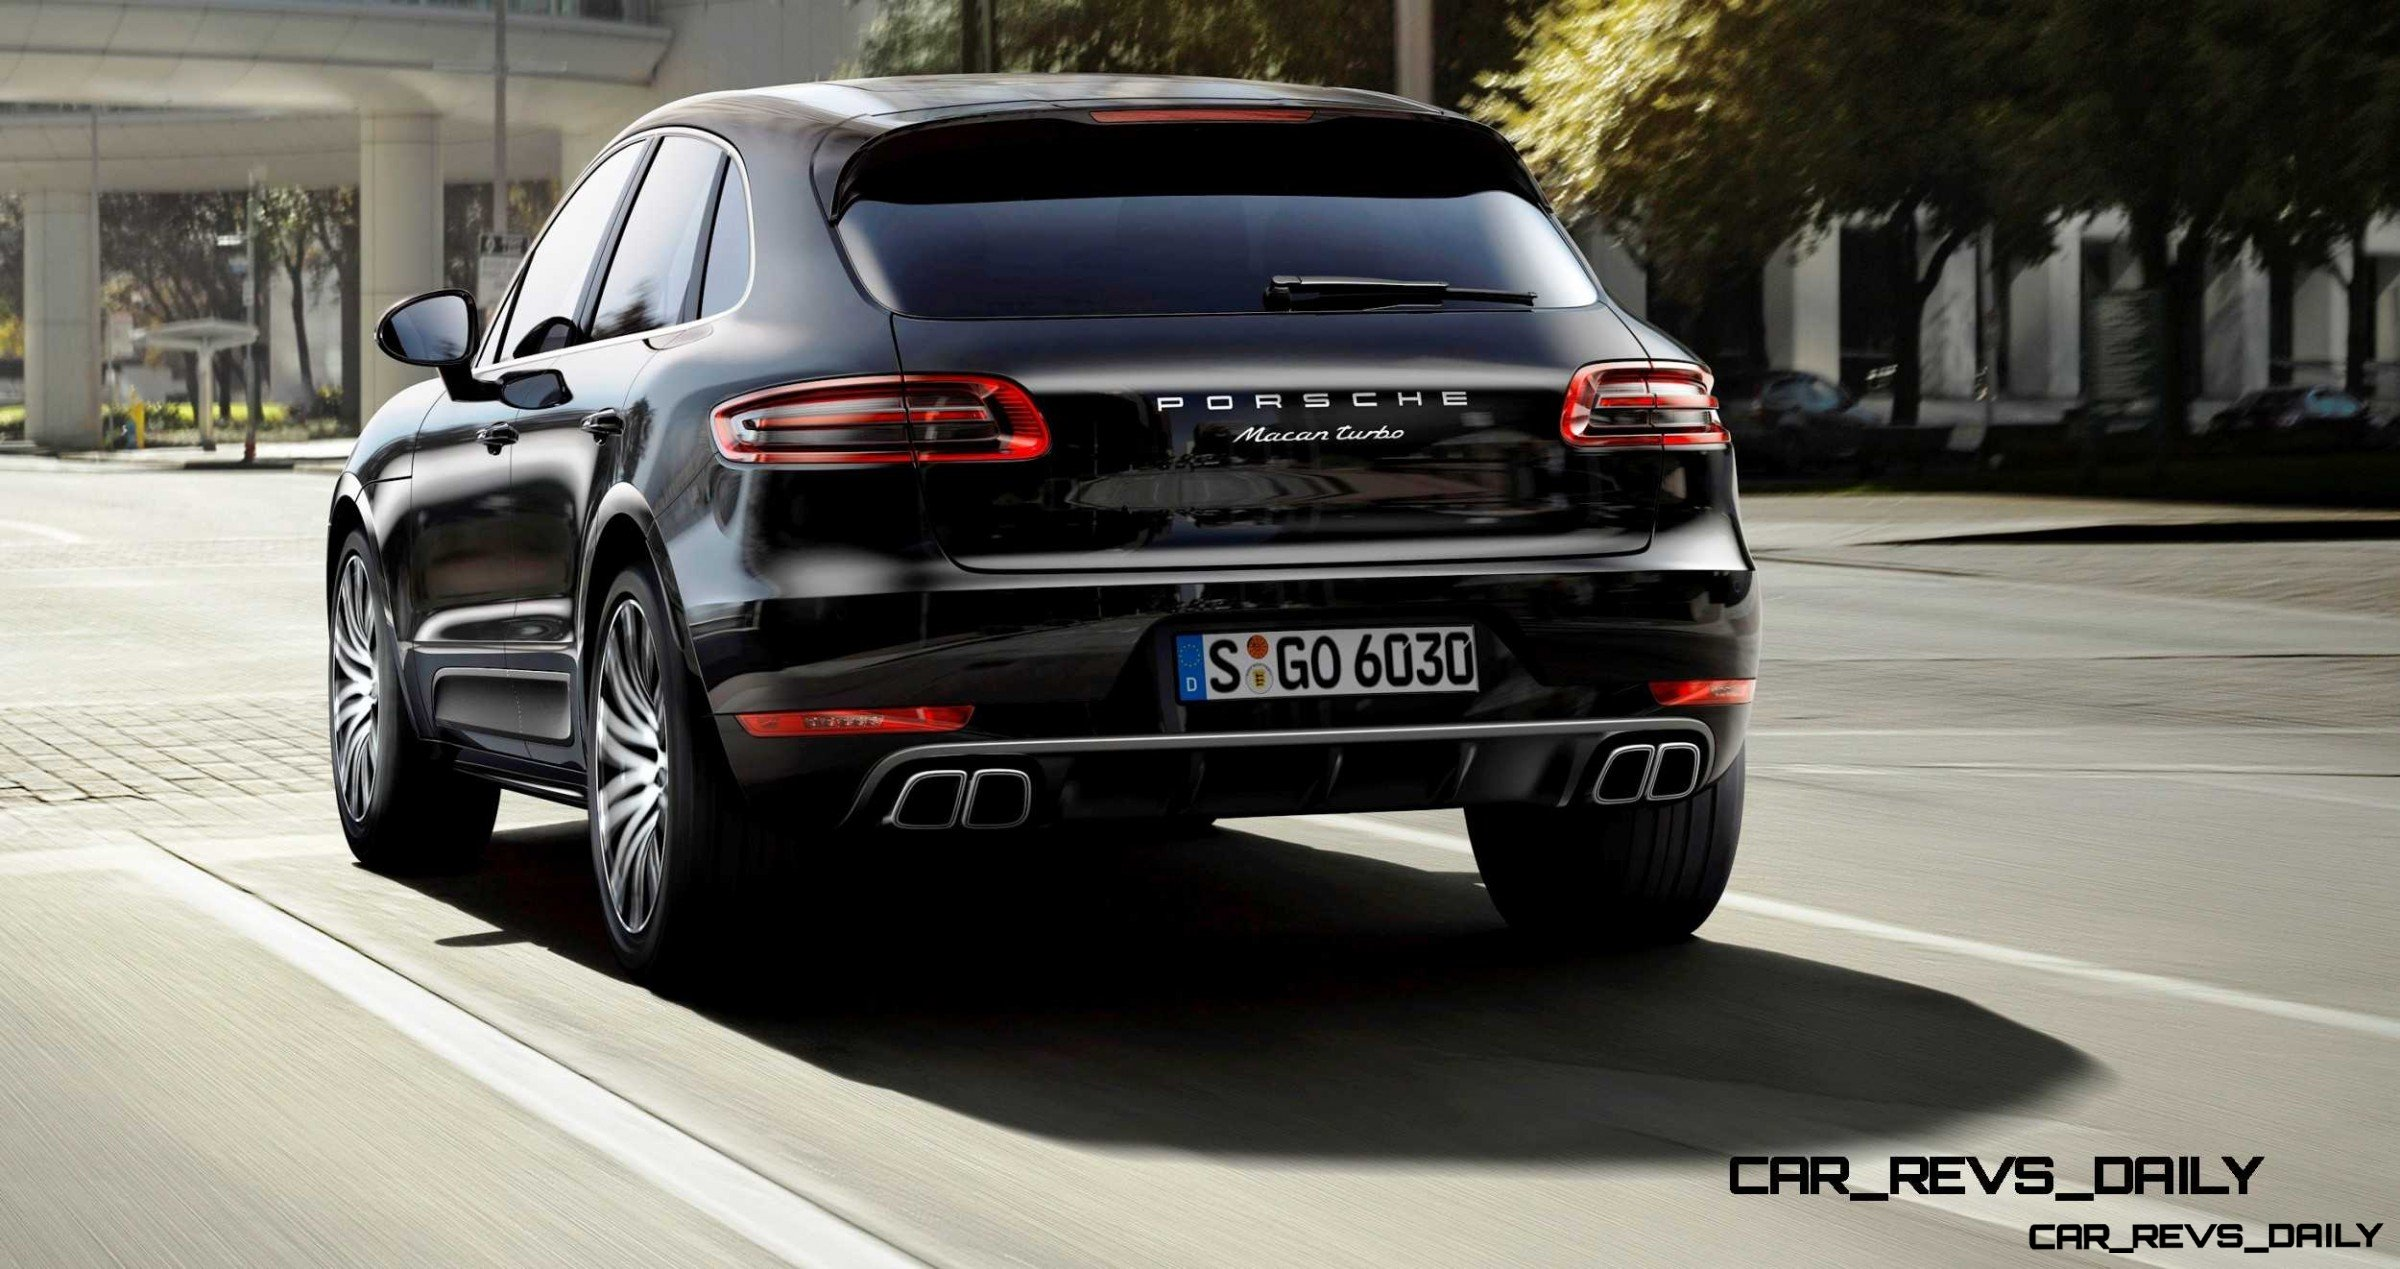 2014 Porsche Macan Turbo and Macan S - Official Debut Photos12